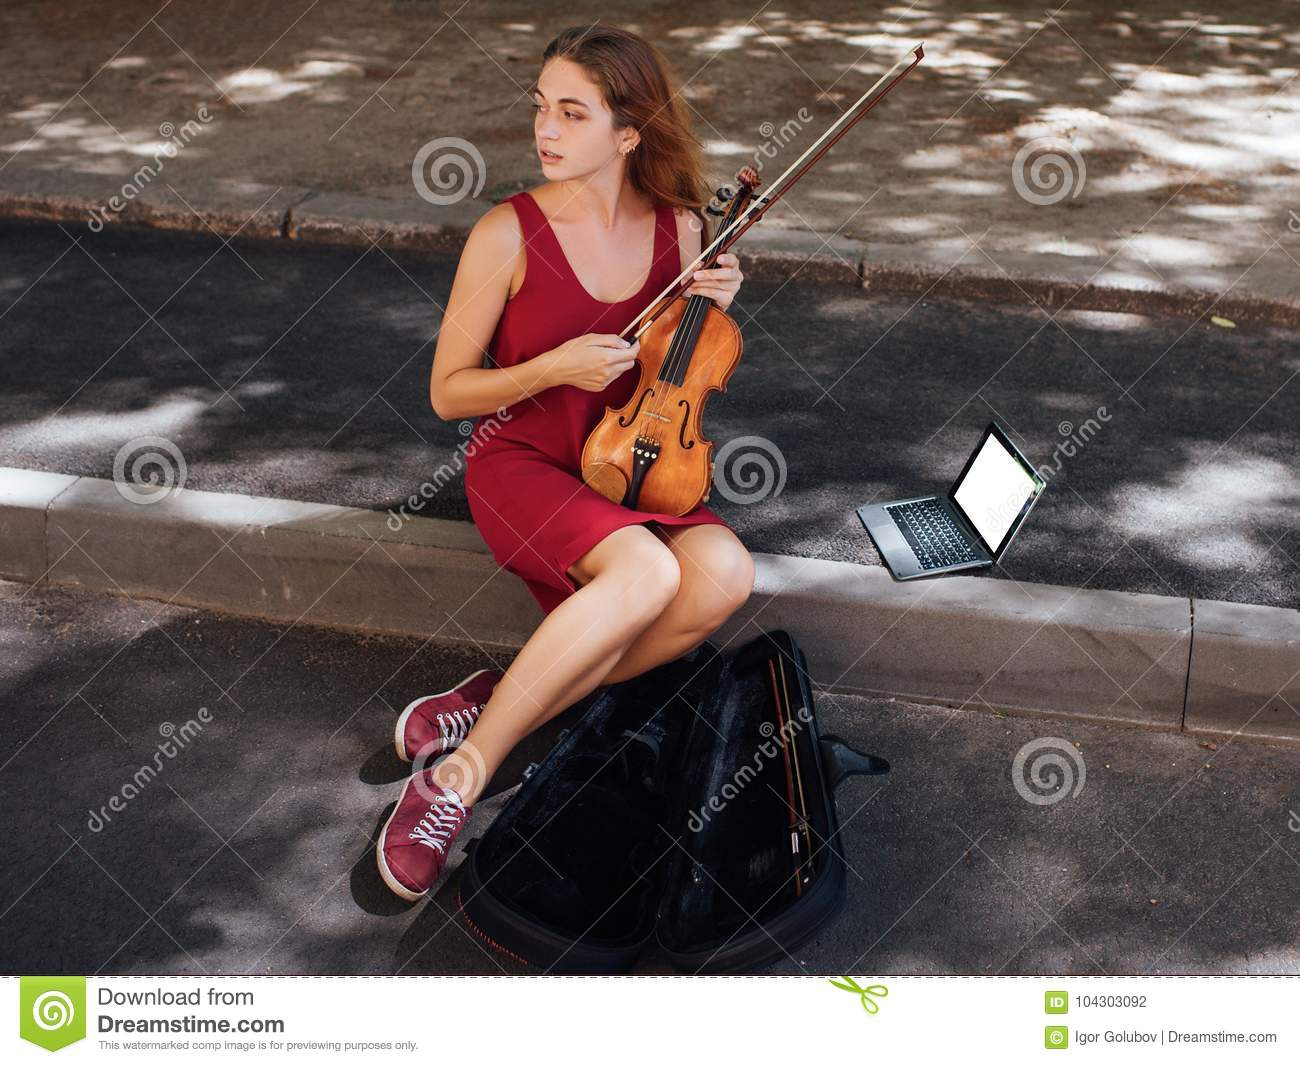 Street musical performance art hobby